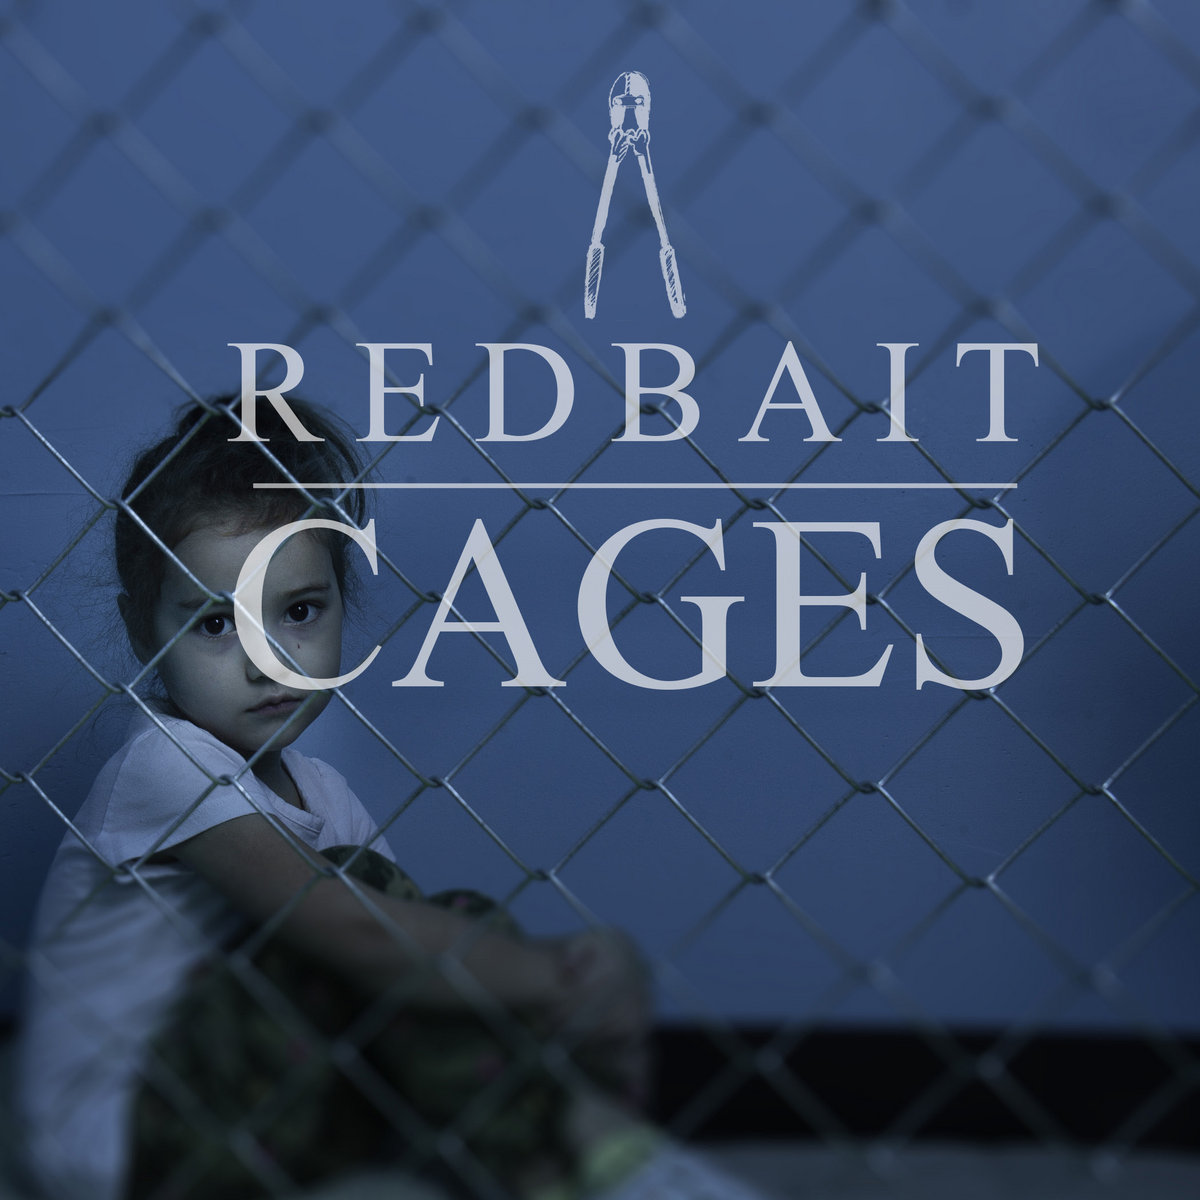 REDBAIT CAGES album artwork